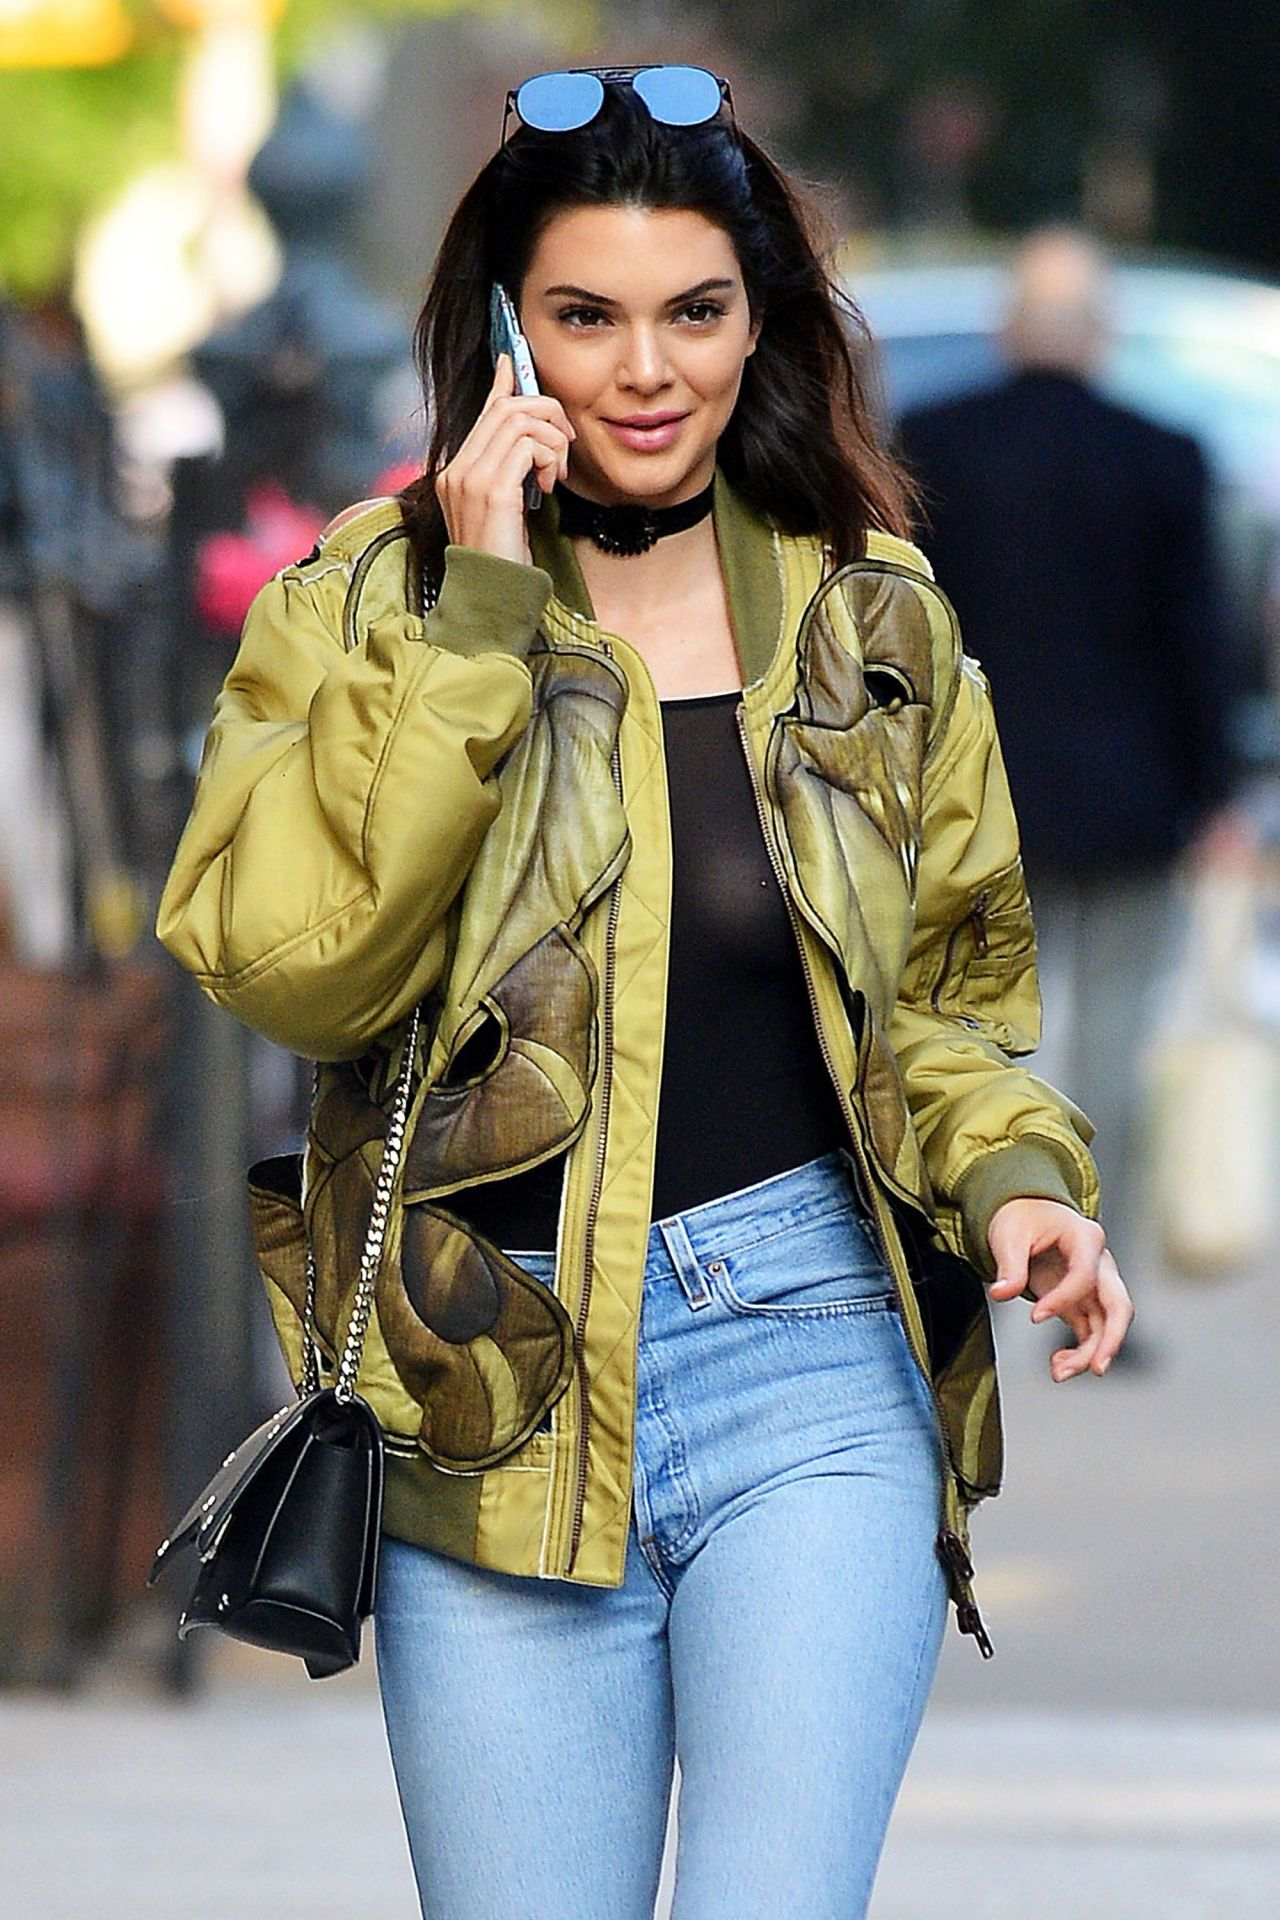 fcef1df0eb610c Kendall Jenner Urban Outfit - New York City 6 21 2016